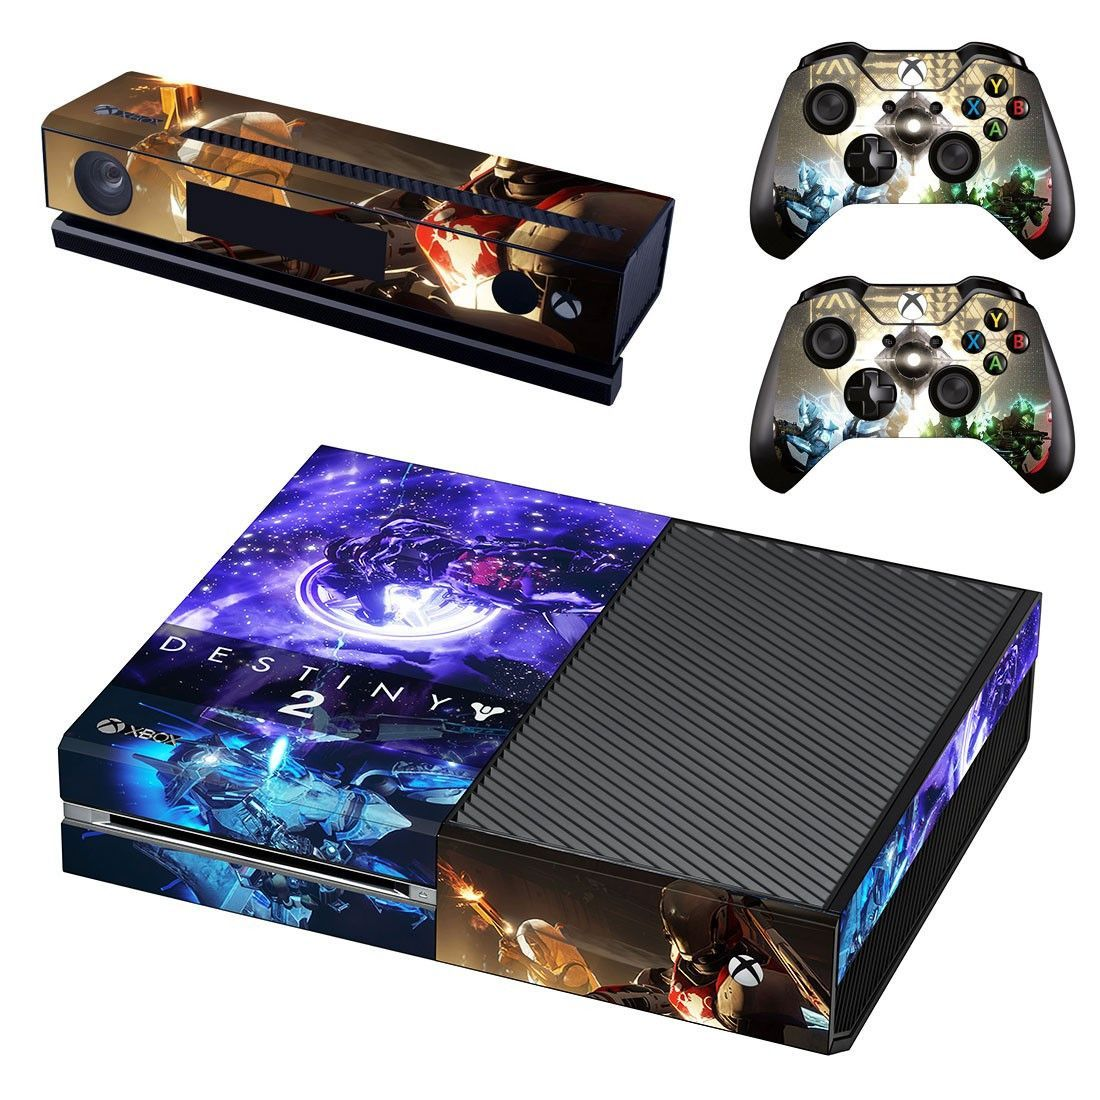 Destiny 2 xbox one skin decal for console and 2 controllers   Cool